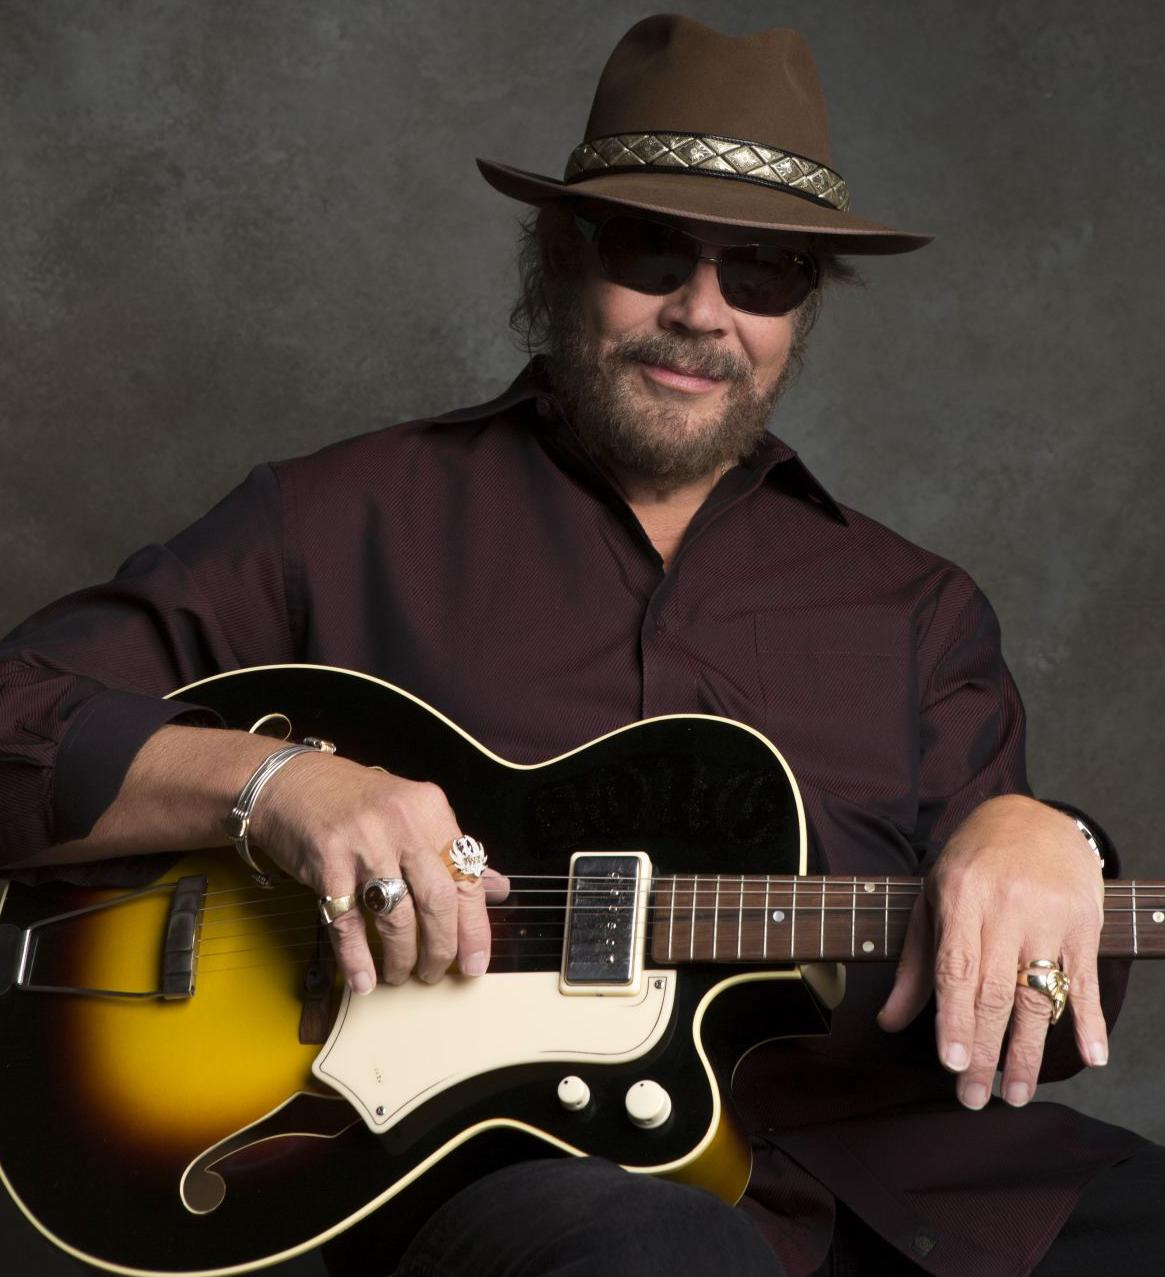 De 70-años 188 cm de altura Hank Williams Jr en 2020 foto